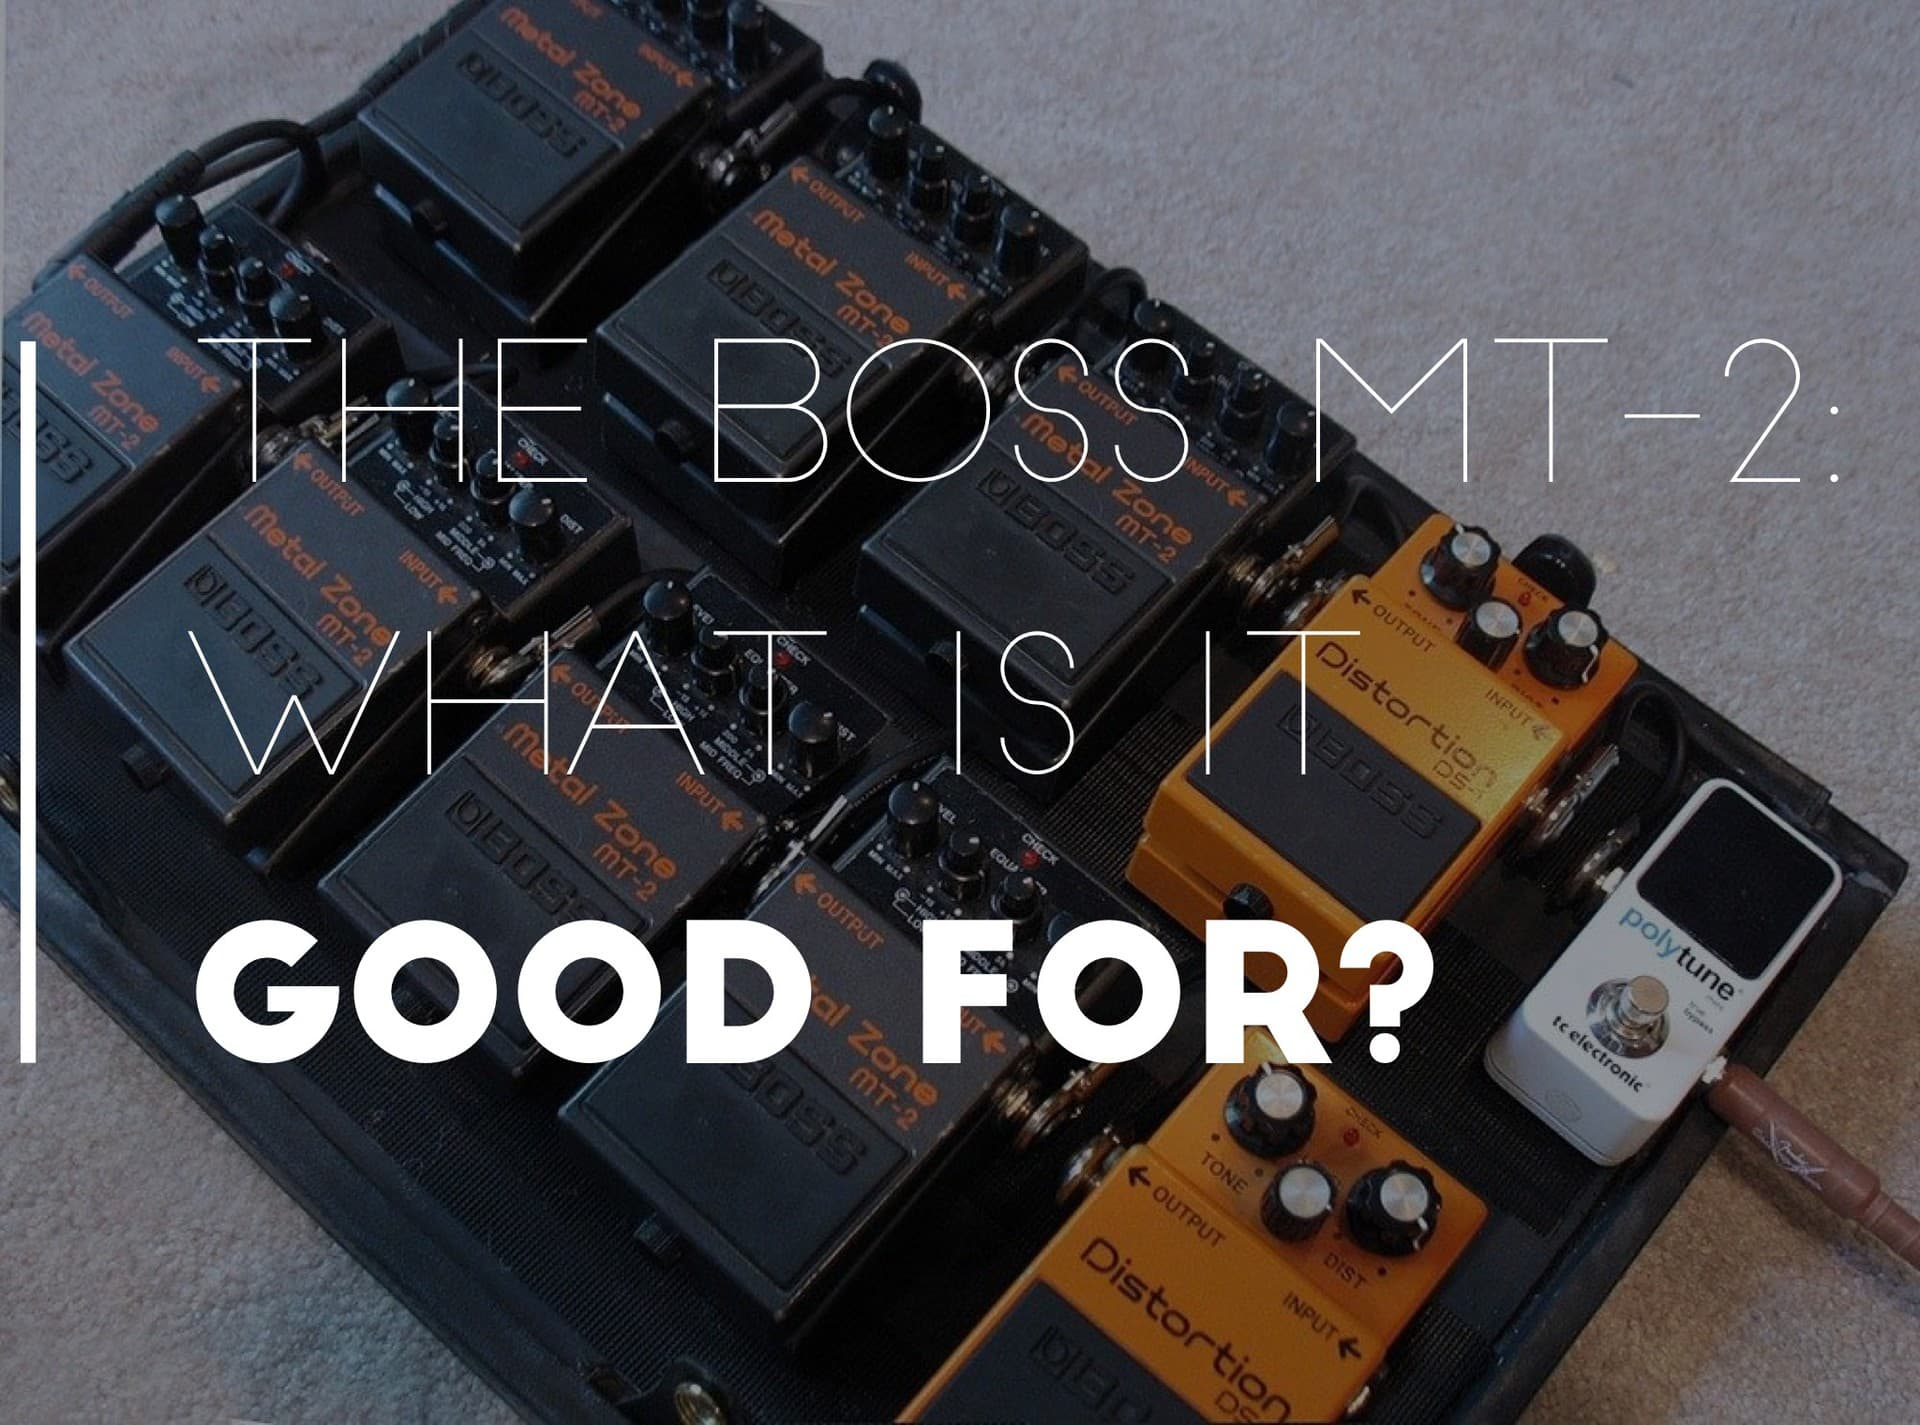 The Boss Metal Zone MT-2 Pedal: What's it good for?